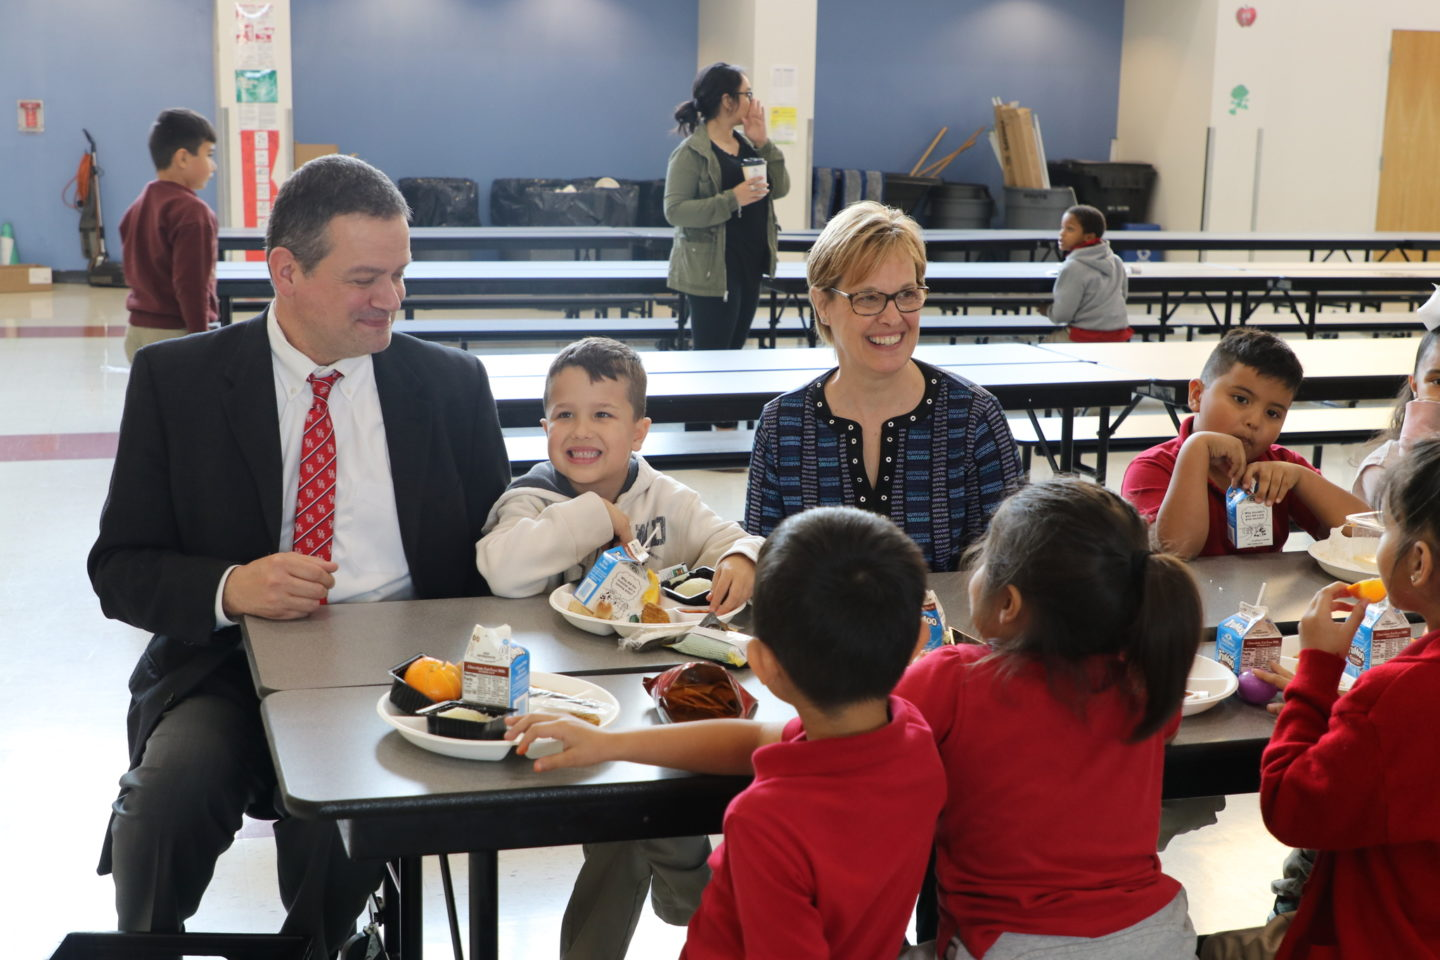 Michael Rosenberger, Urban School Food Alliance chairman, (left) and Katie Wilson, Urban School Food Alliance executive director, (right) join students for lunch at Felix G. Botello Elementary School in Dallas